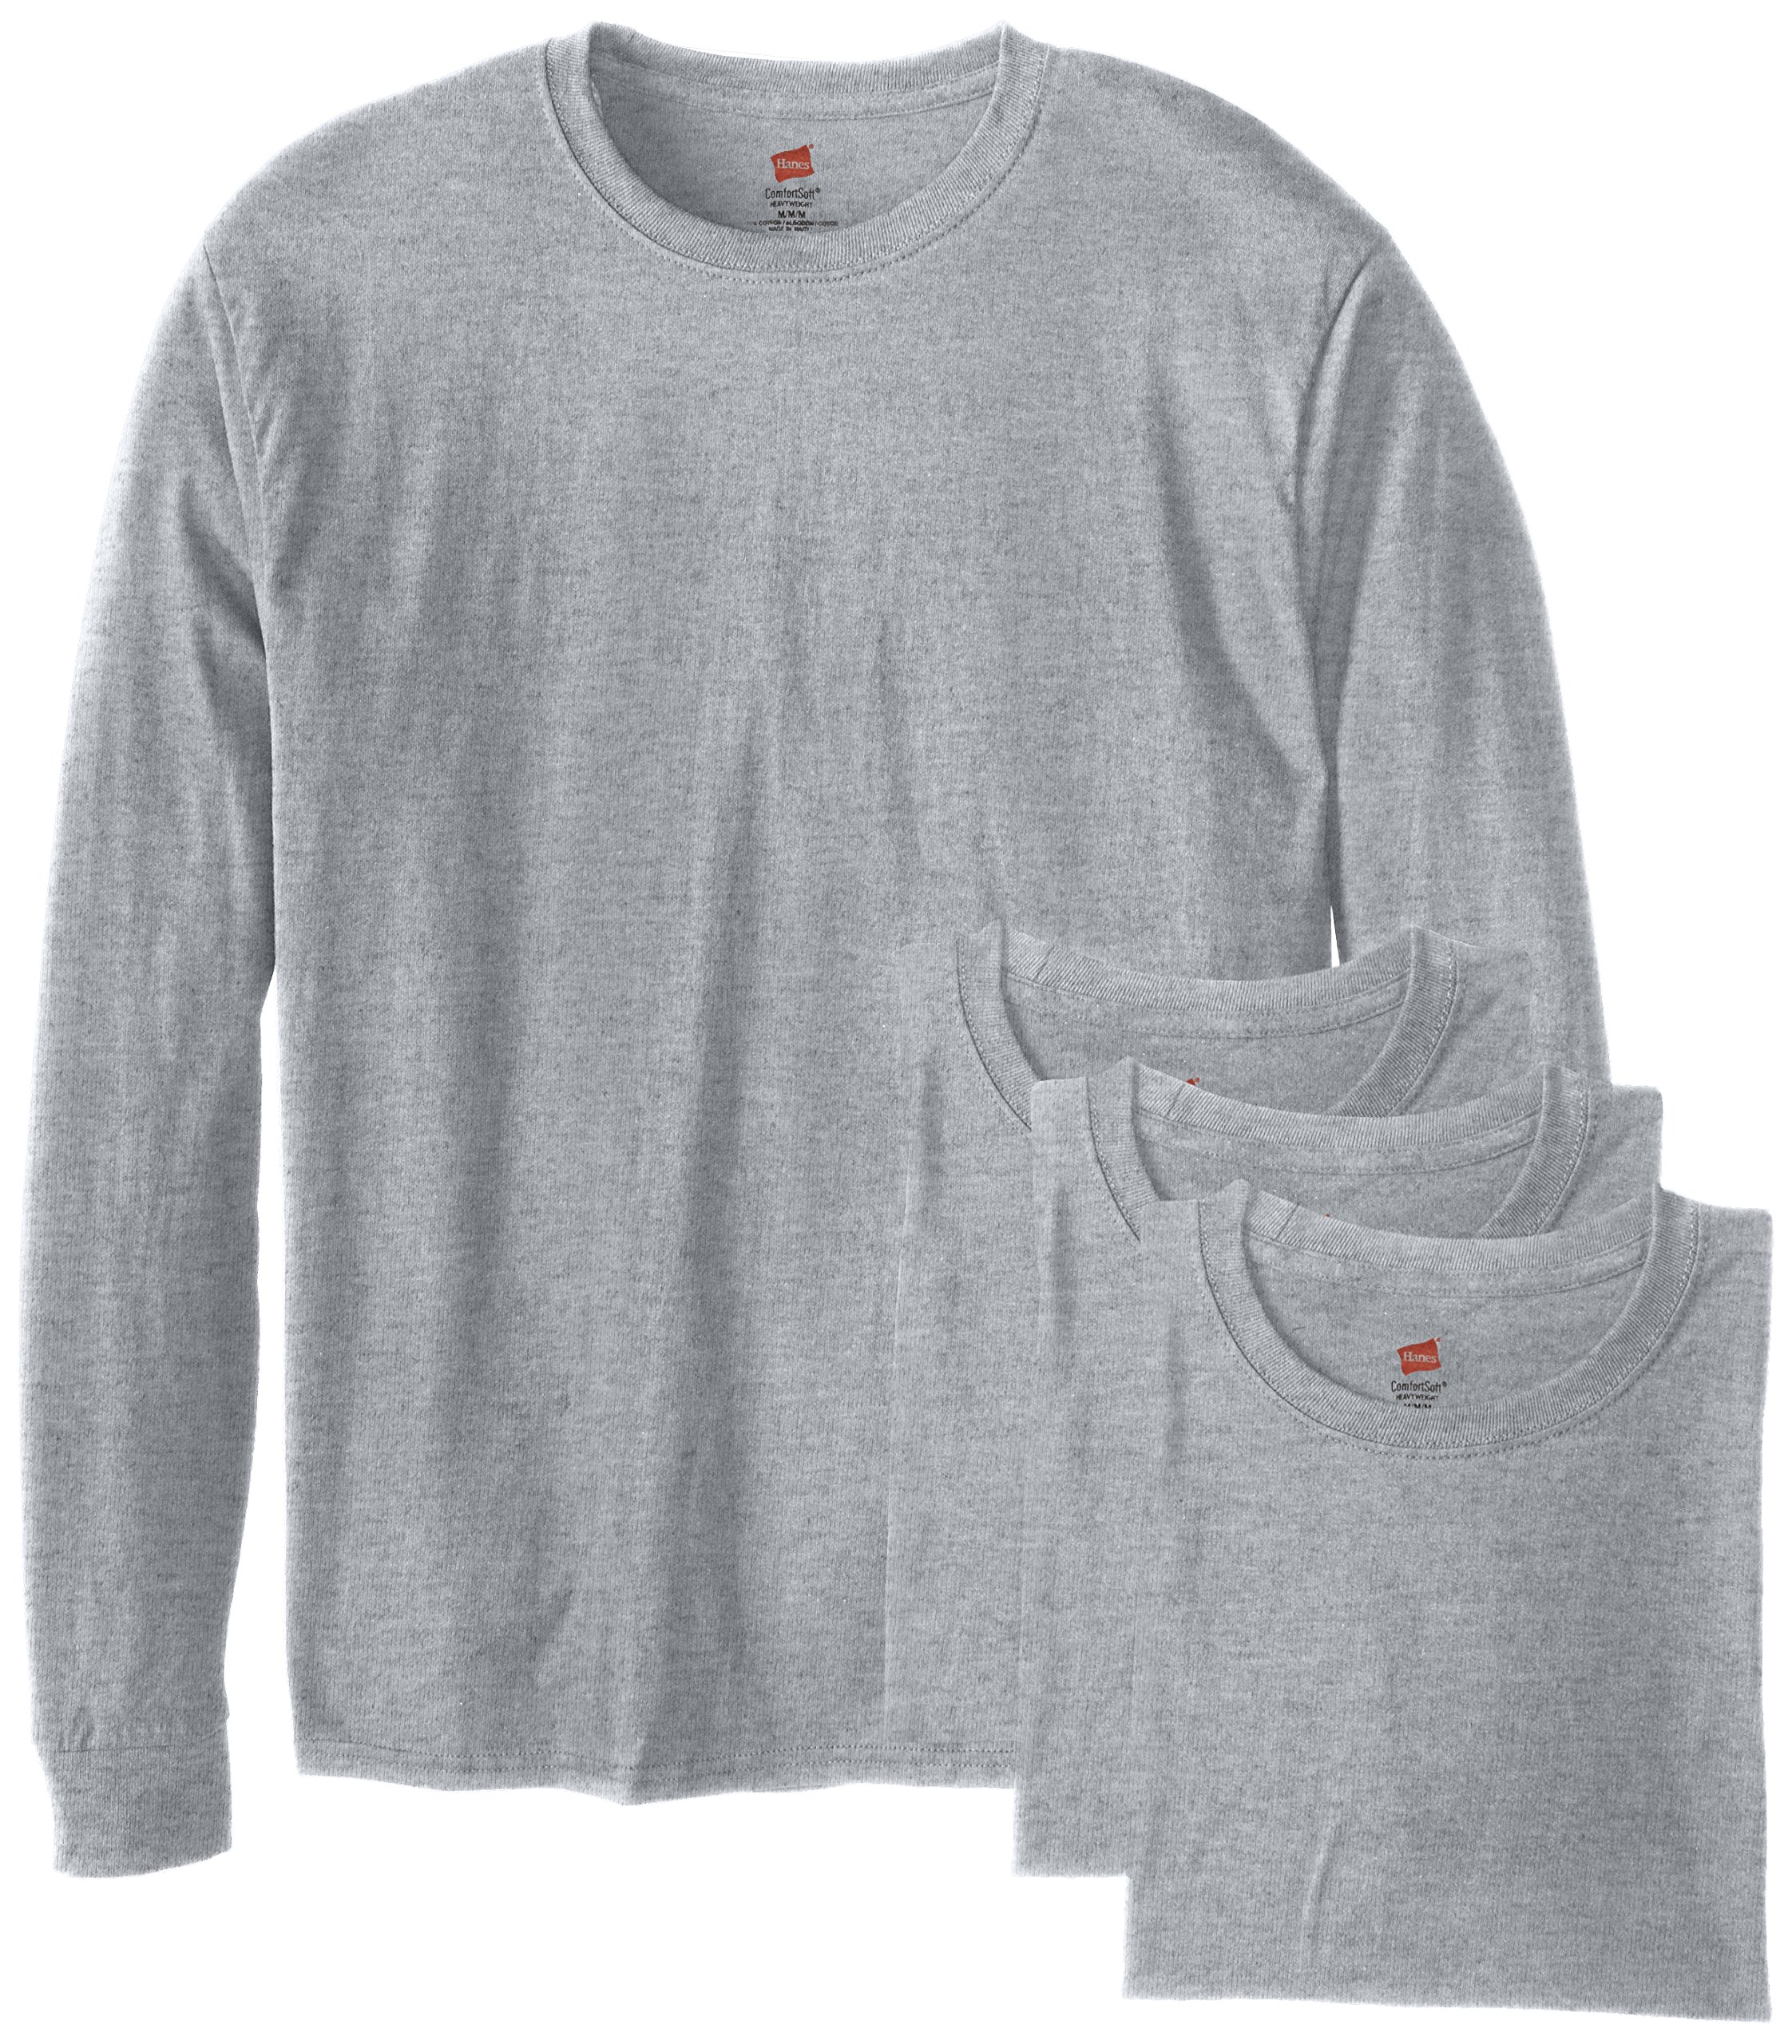 Hanes Men's 4 Pack Long Sleeve Comfortsoft T-Shirt, Light ST-Shirtl, Large